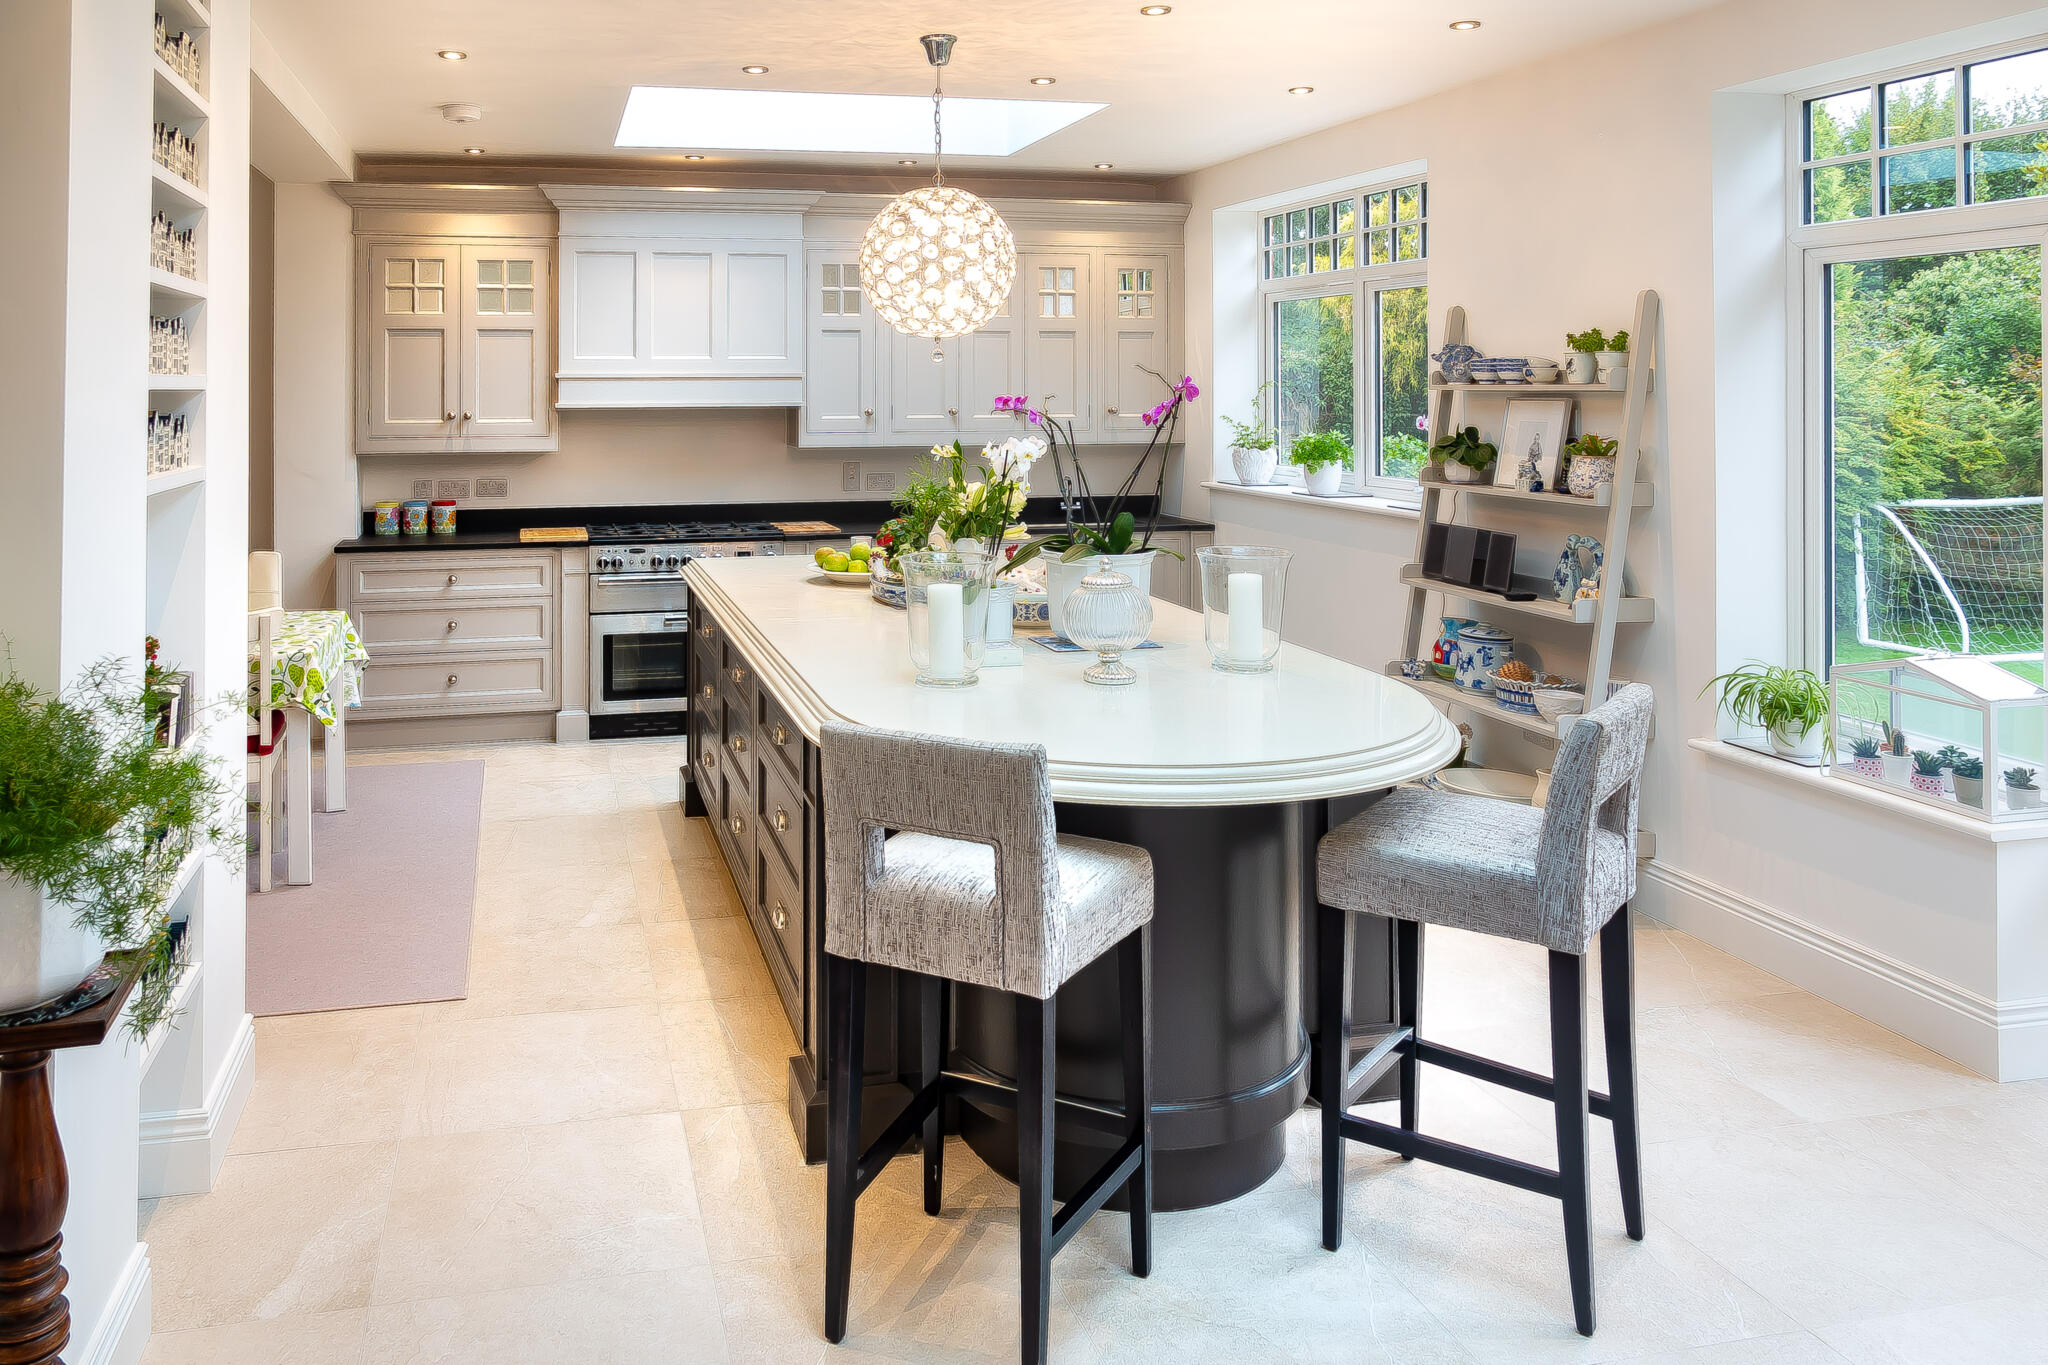 Buying a used kitchen turned us into Interior Designers!